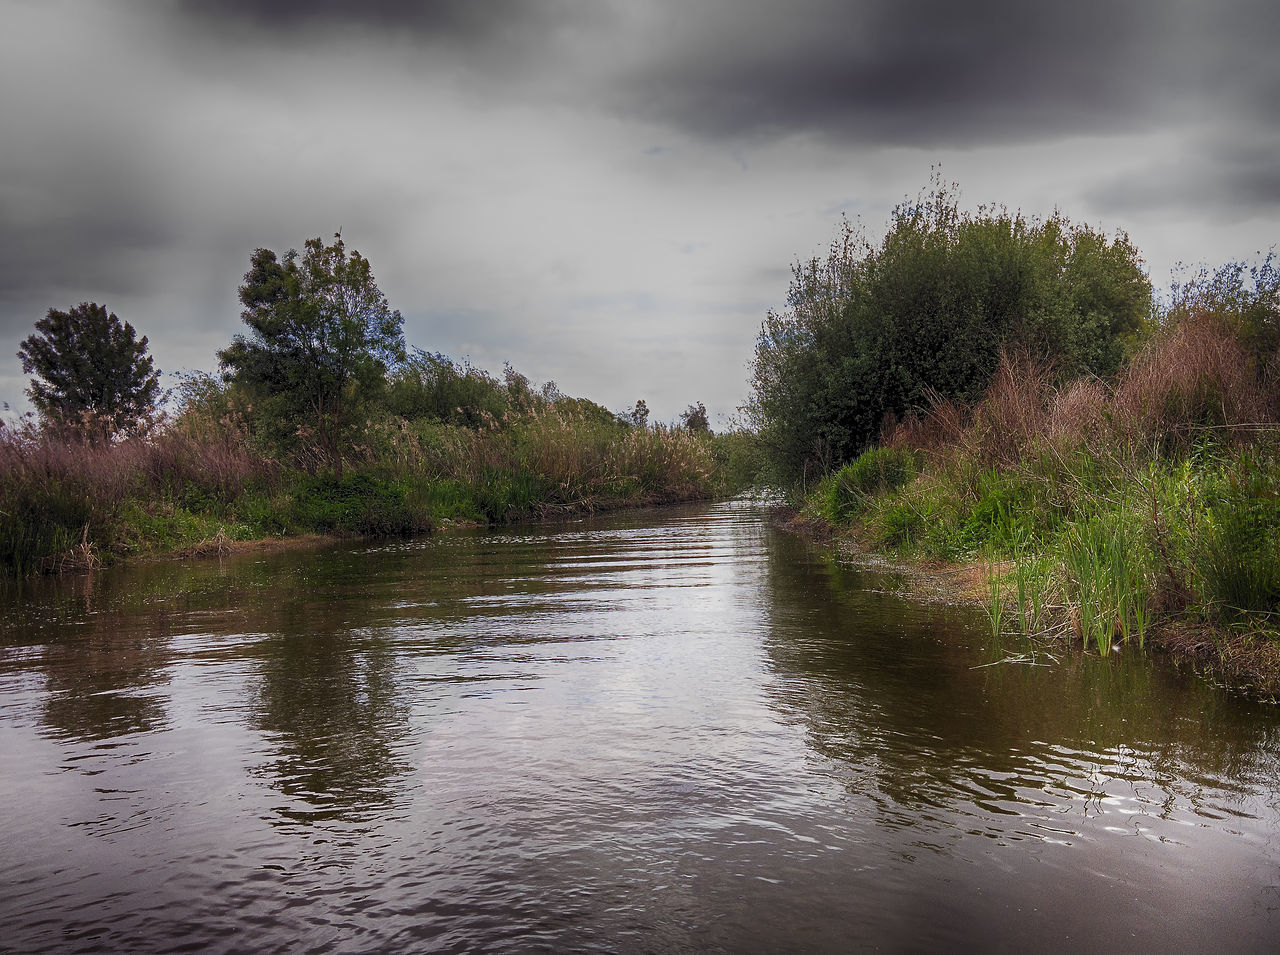 nature, tree, water, tranquility, beauty in nature, tranquil scene, scenics, cloud - sky, outdoors, sky, no people, day, river, growth, landscape, grass